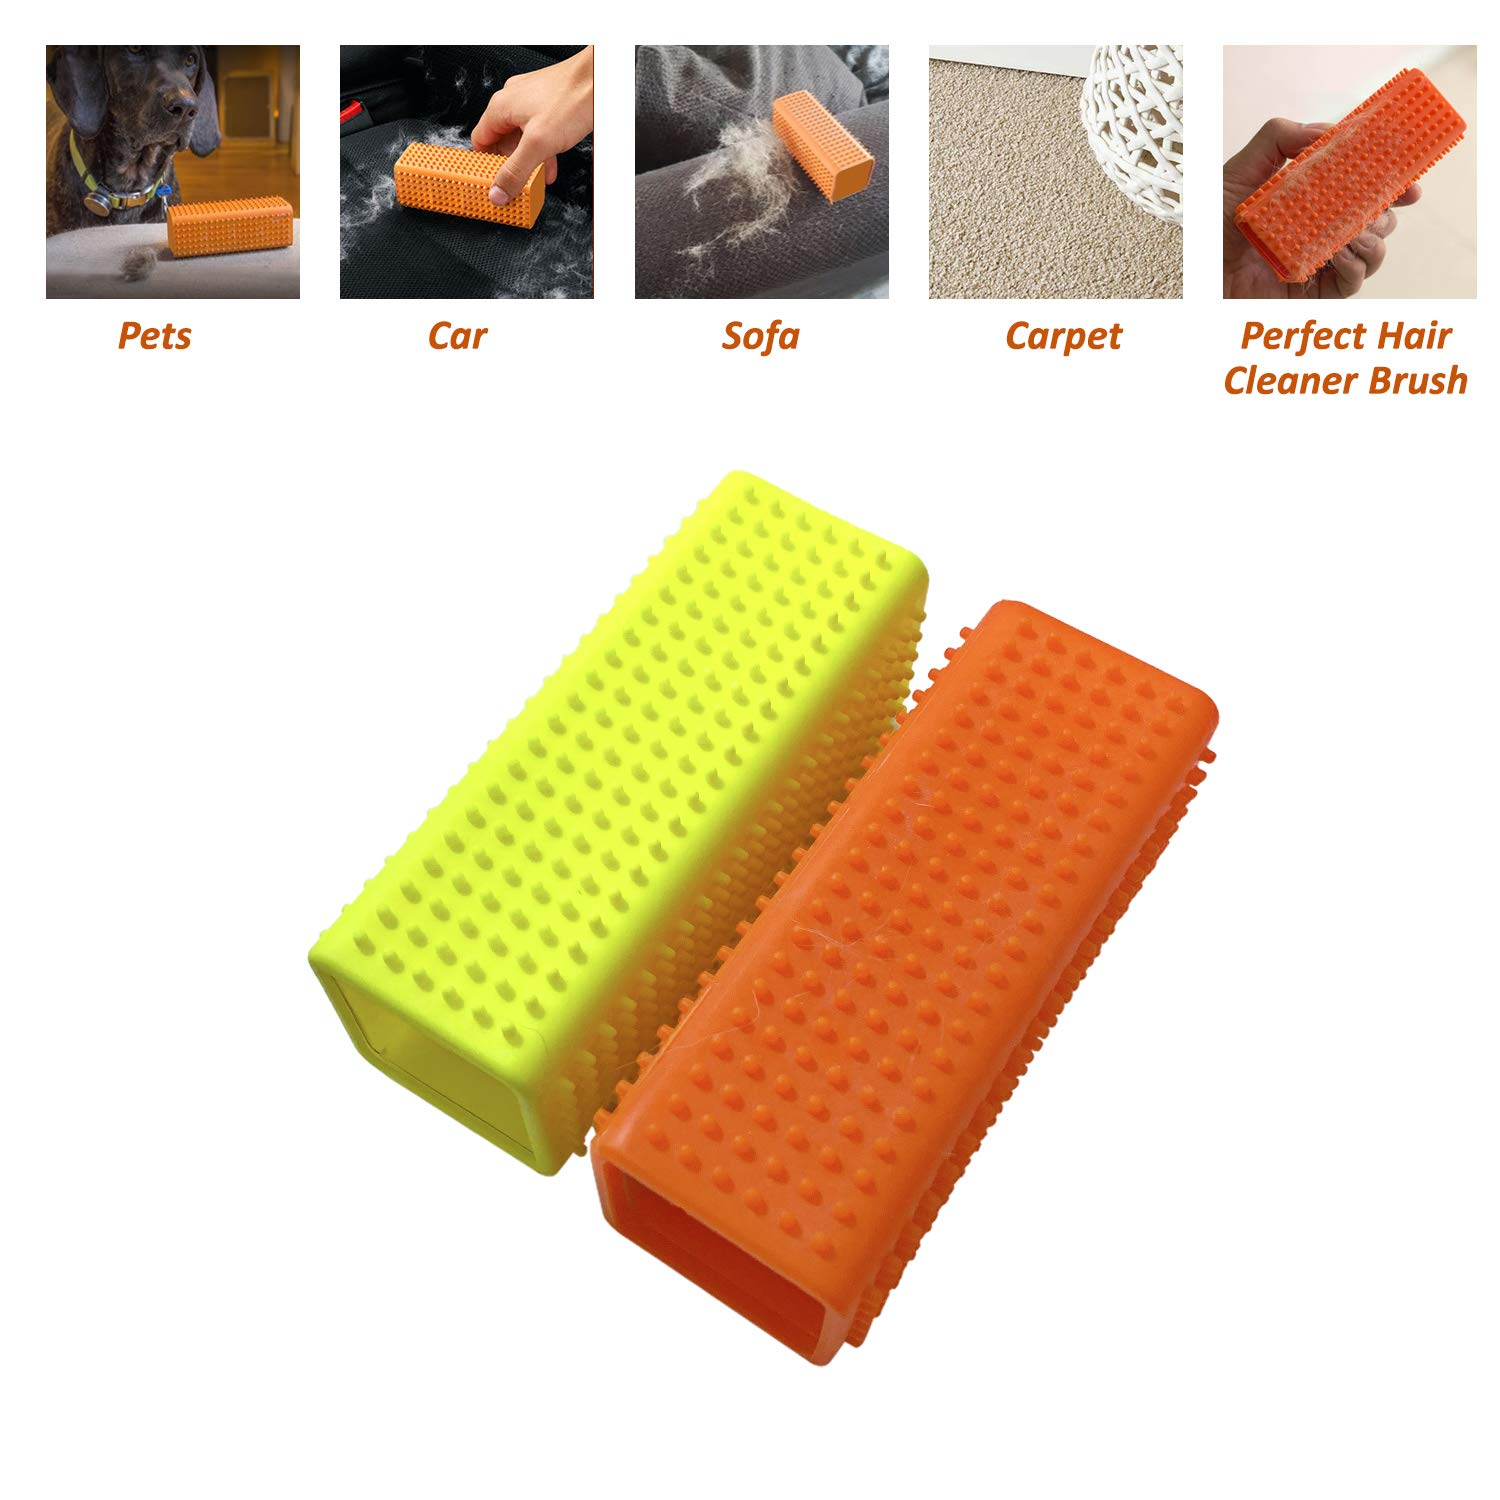 USAMS Pet Dog Cat Hair Remover for Cars Furniture Carpet Sofa Hollow Rubber Cleaner Brush (Orange+Yellow, 2-Pack)